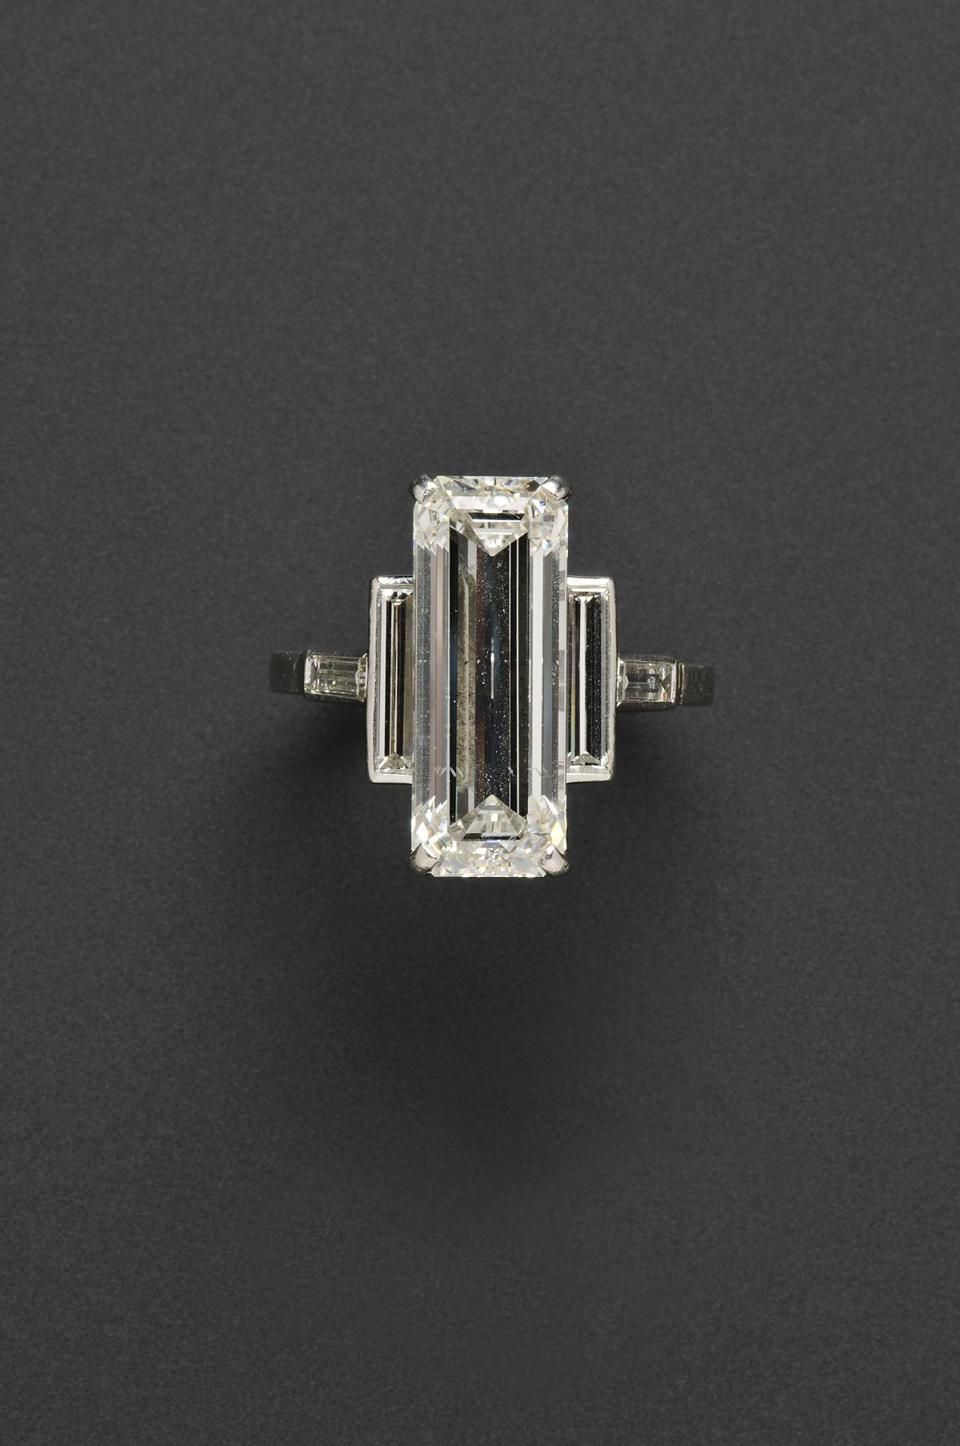 35e641049a2292 7.75-CARAT DIAMOND CARTIER RING to be auctioned at Skinners in Boston I  like the deco design but can't pony up the $80,000-100,000 it will go for